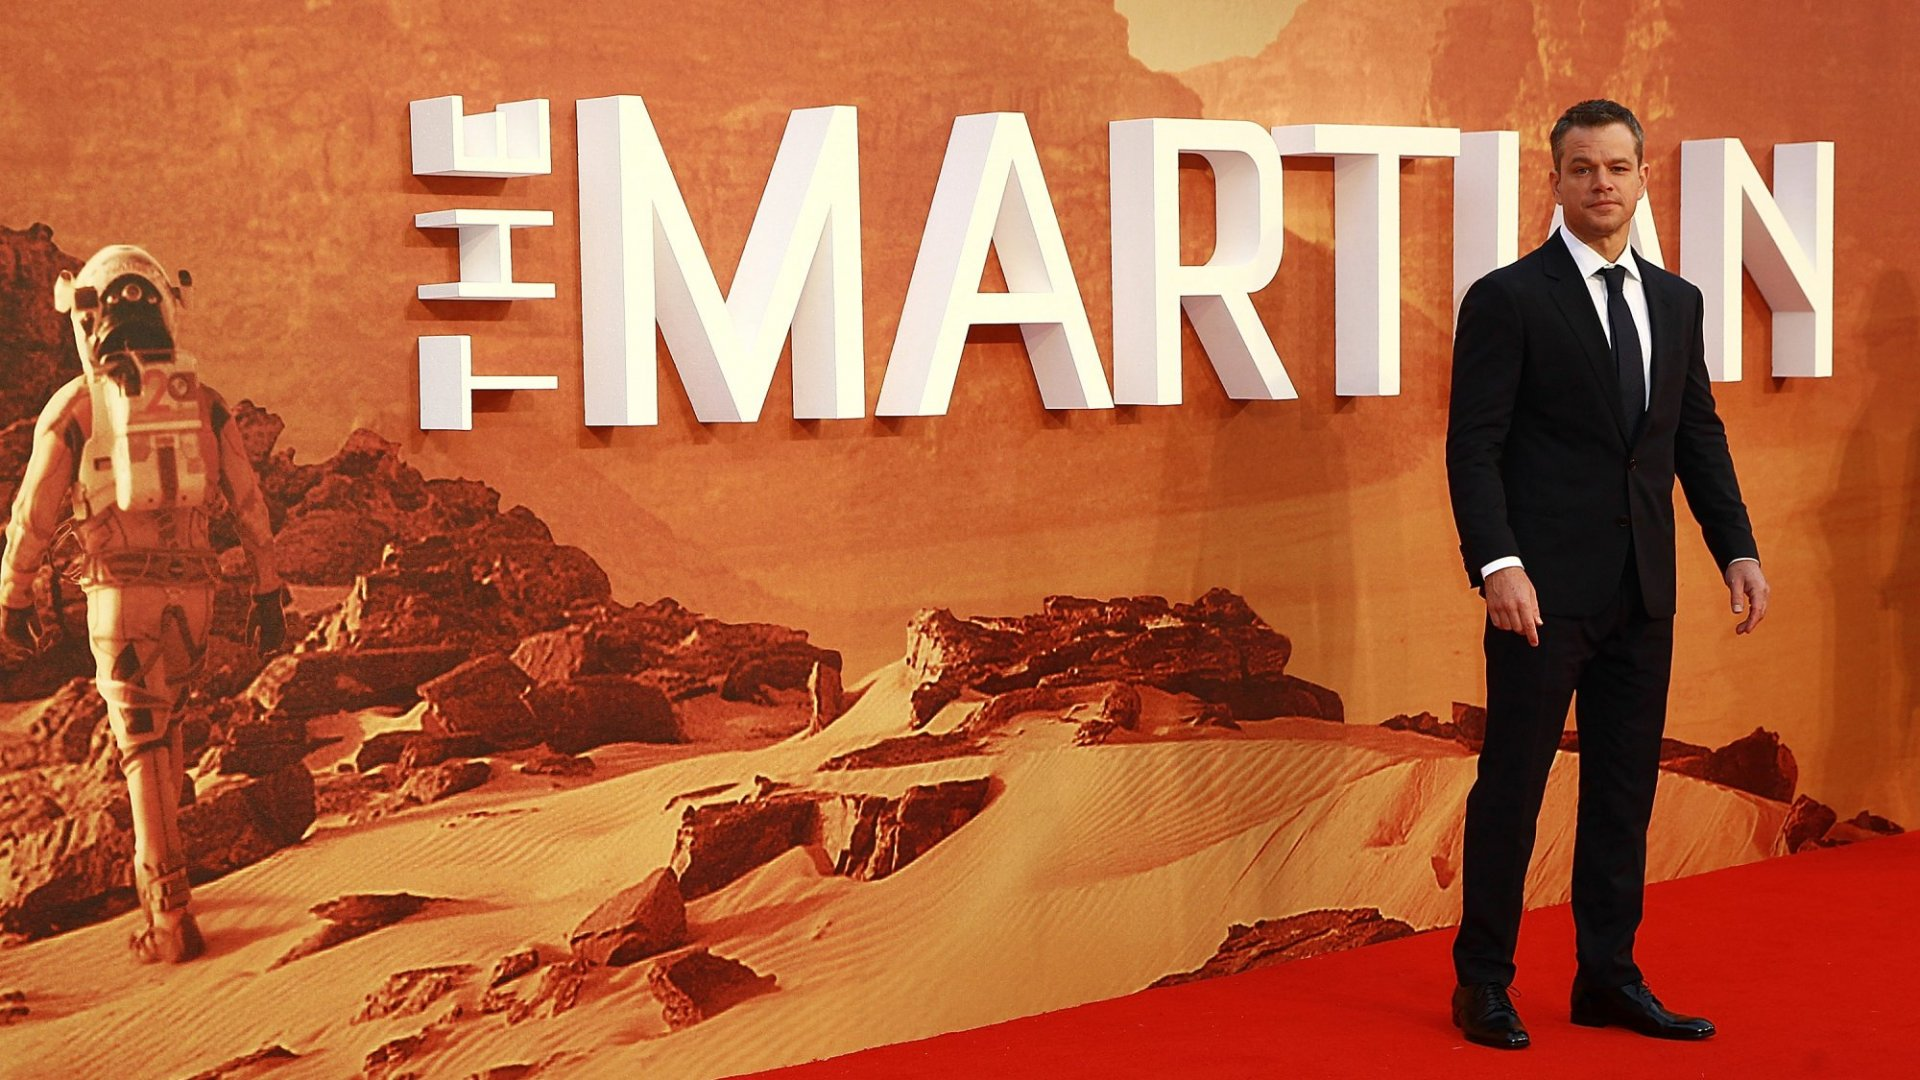 Want to Succeed as an Entrepreneur? Learn This One Lesson From 'The Martian'